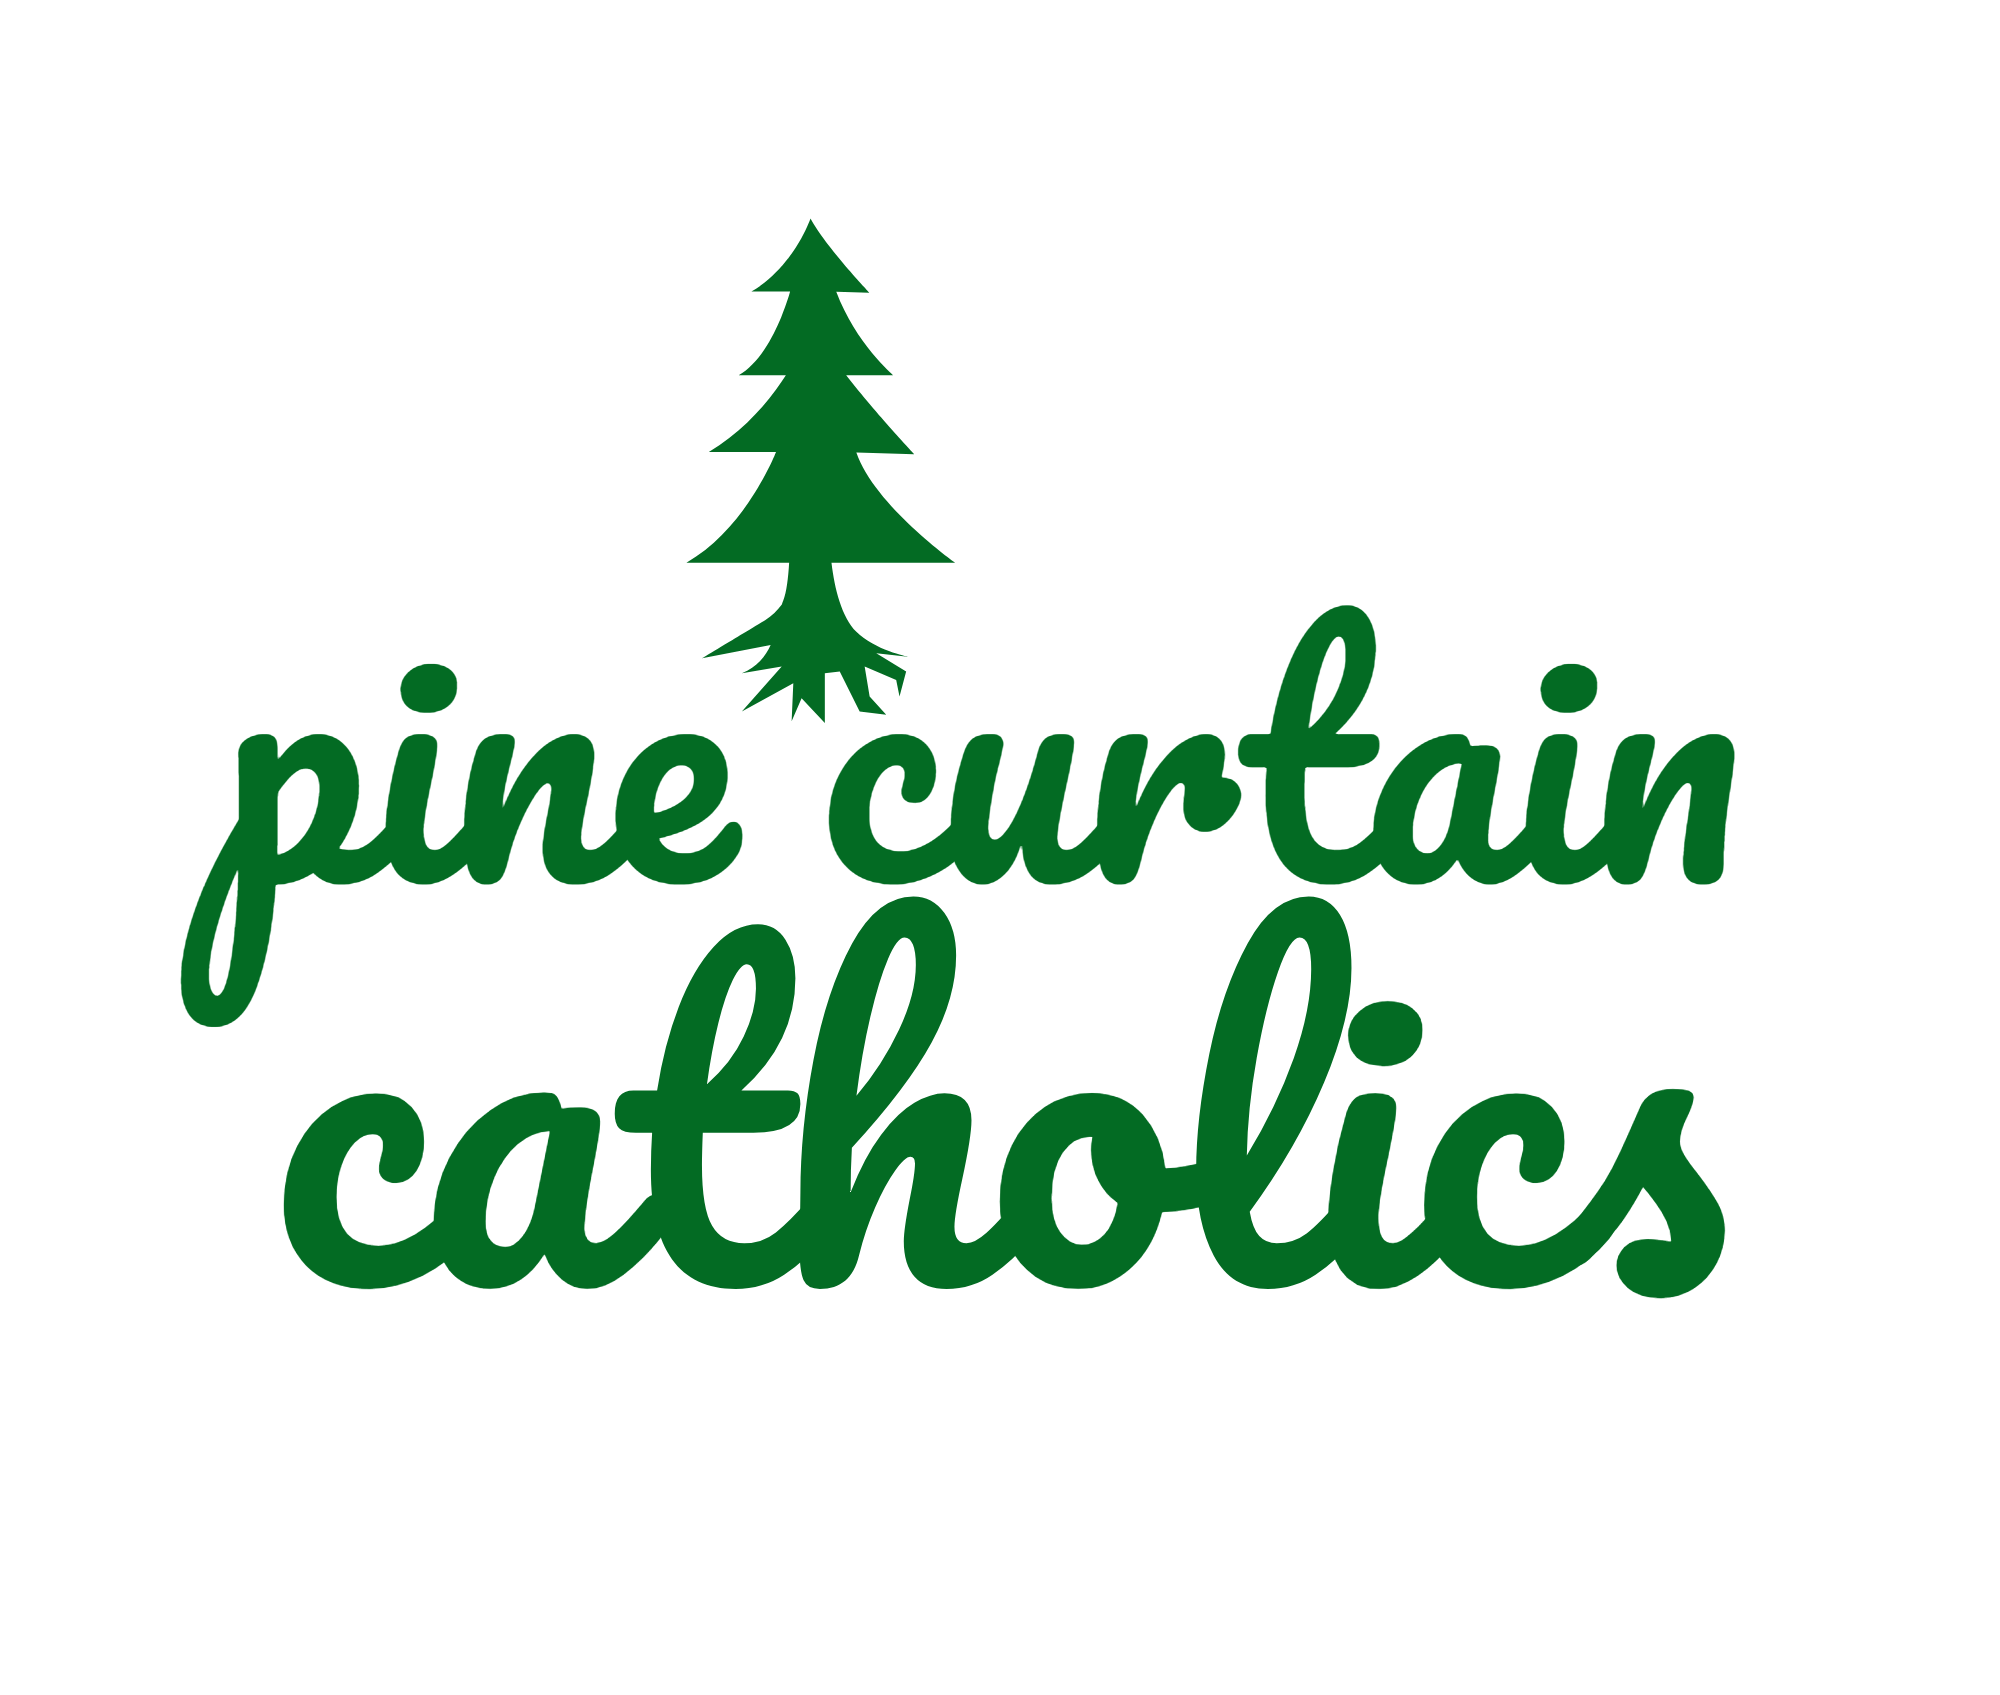 Pine Curtain Catholics - A cakewalk through the CompendiumHosted by Zachary and Amanda Beck, in which we geek out over the teachings of the Church after our kids are in bed. Click the button below to listen or subscribe wherever fine podcasts are played.